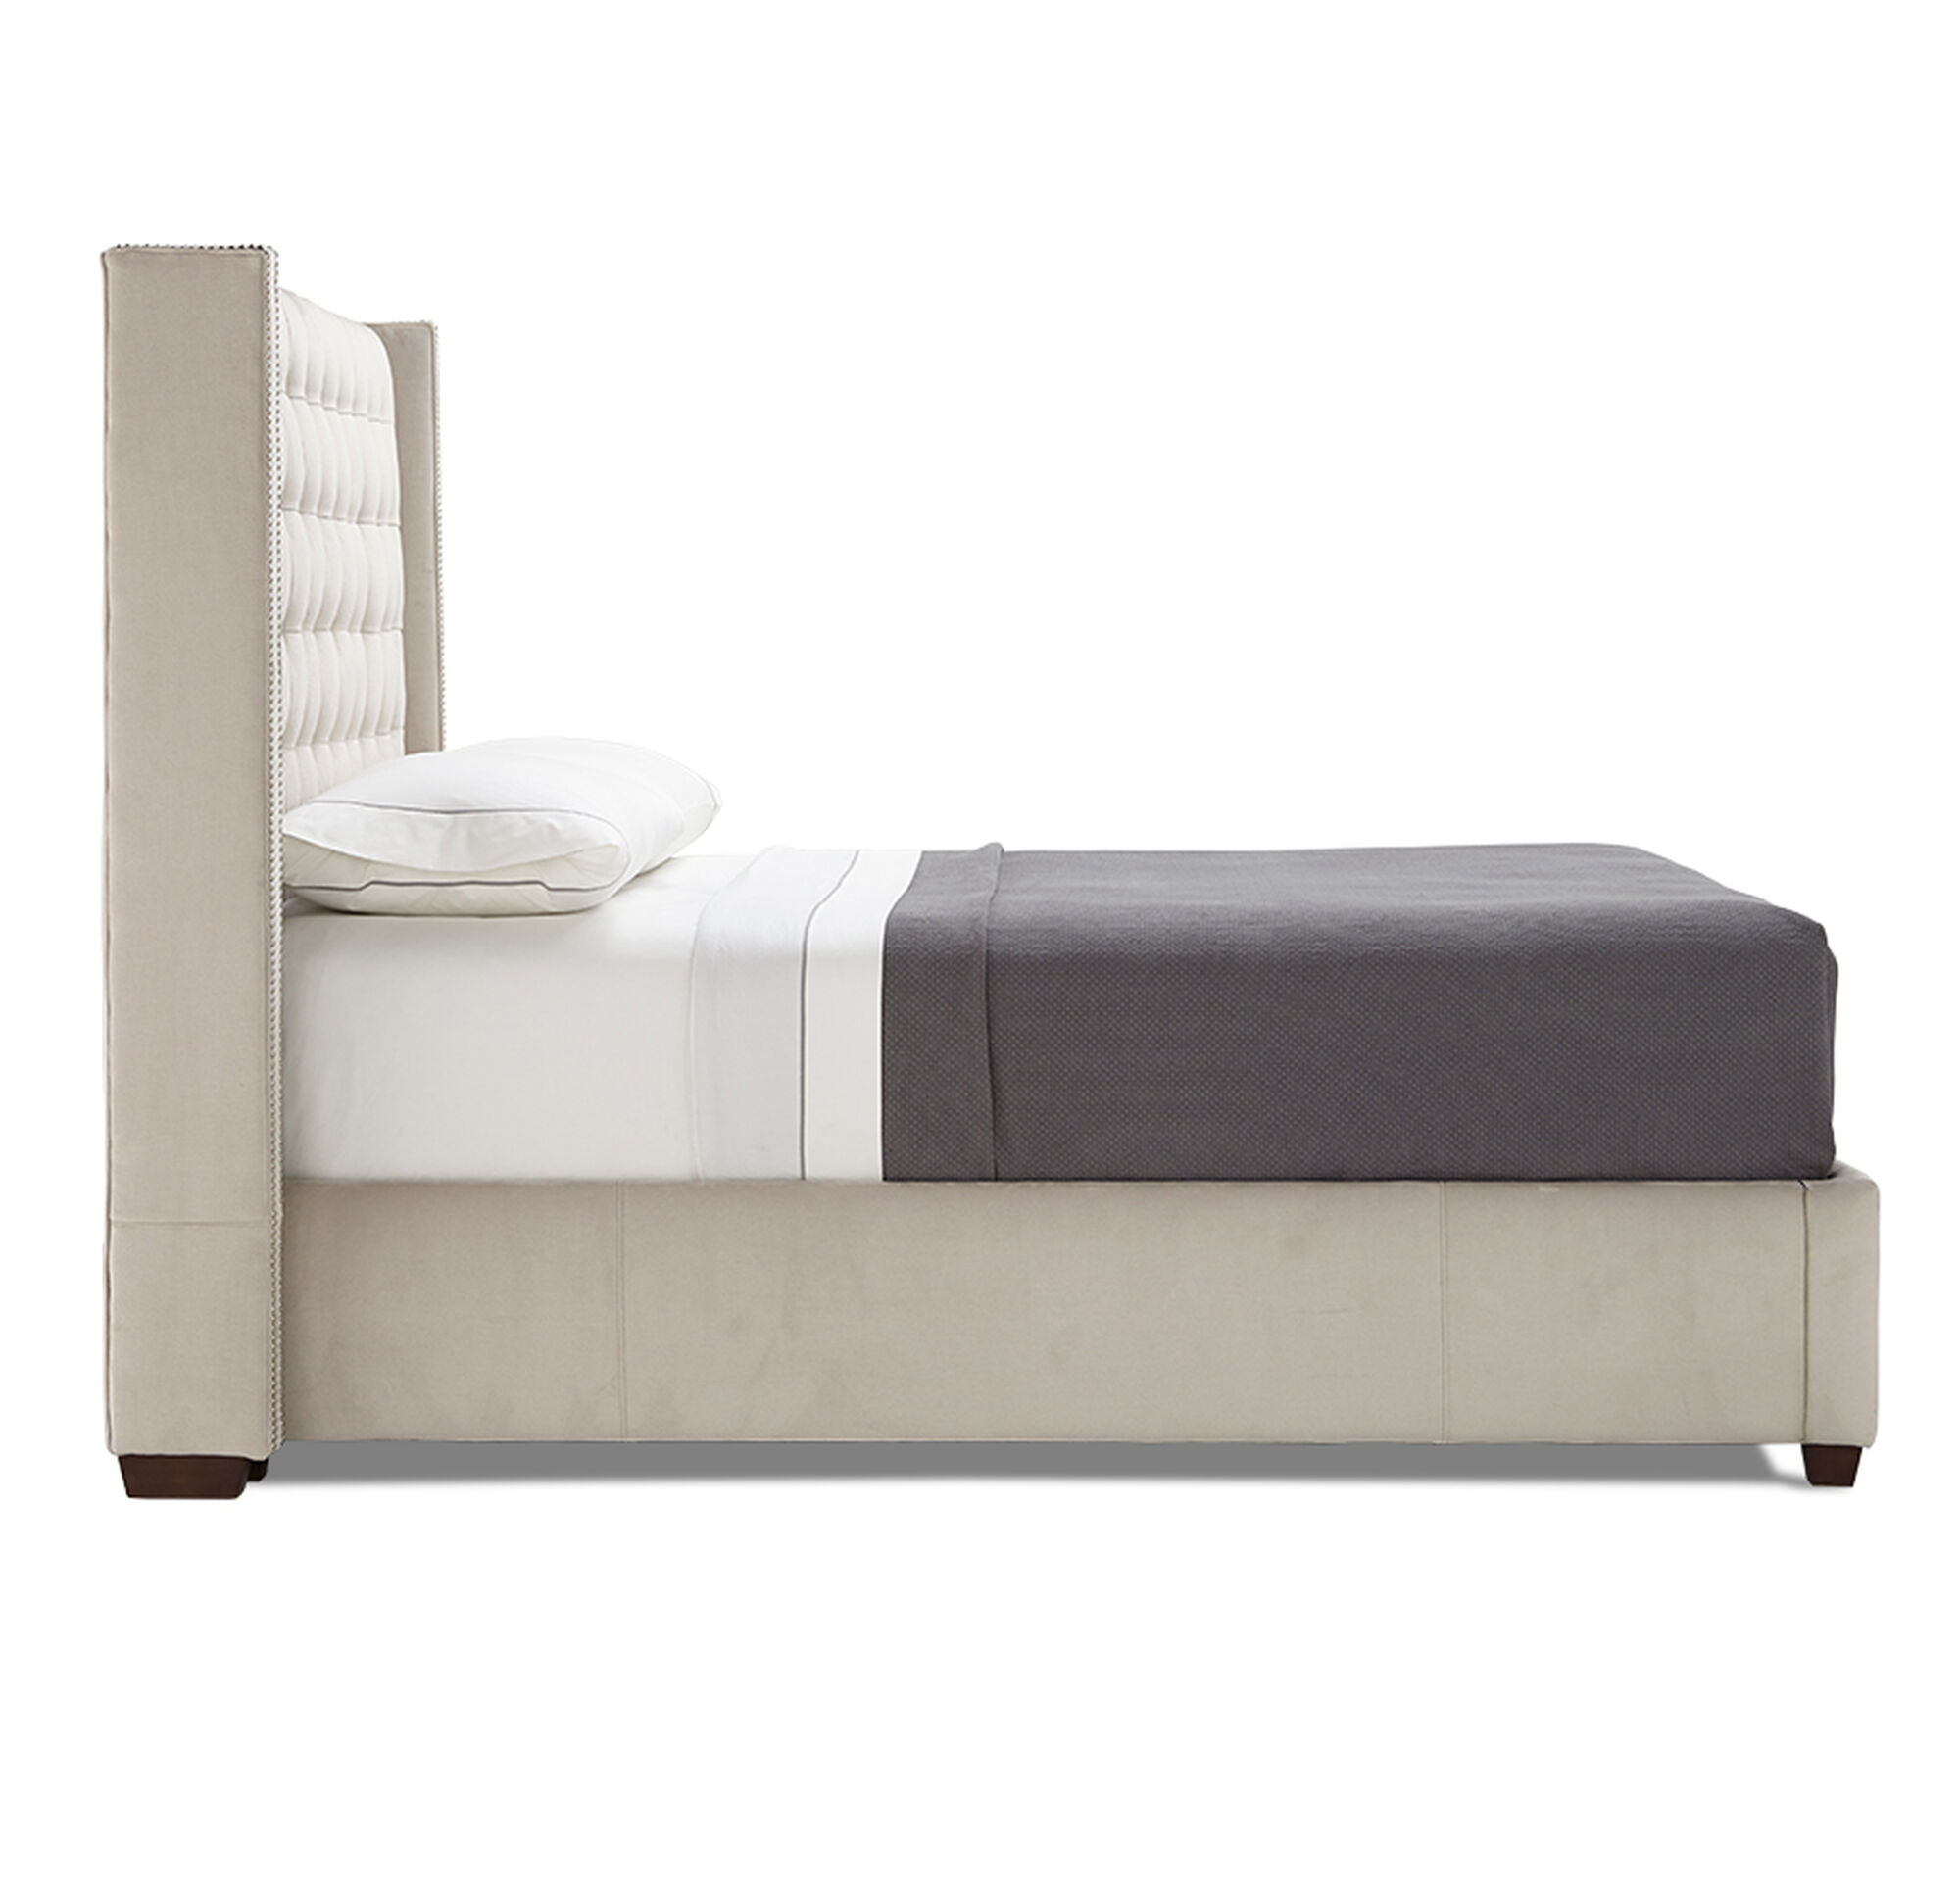 theodore tall king floating rail bed